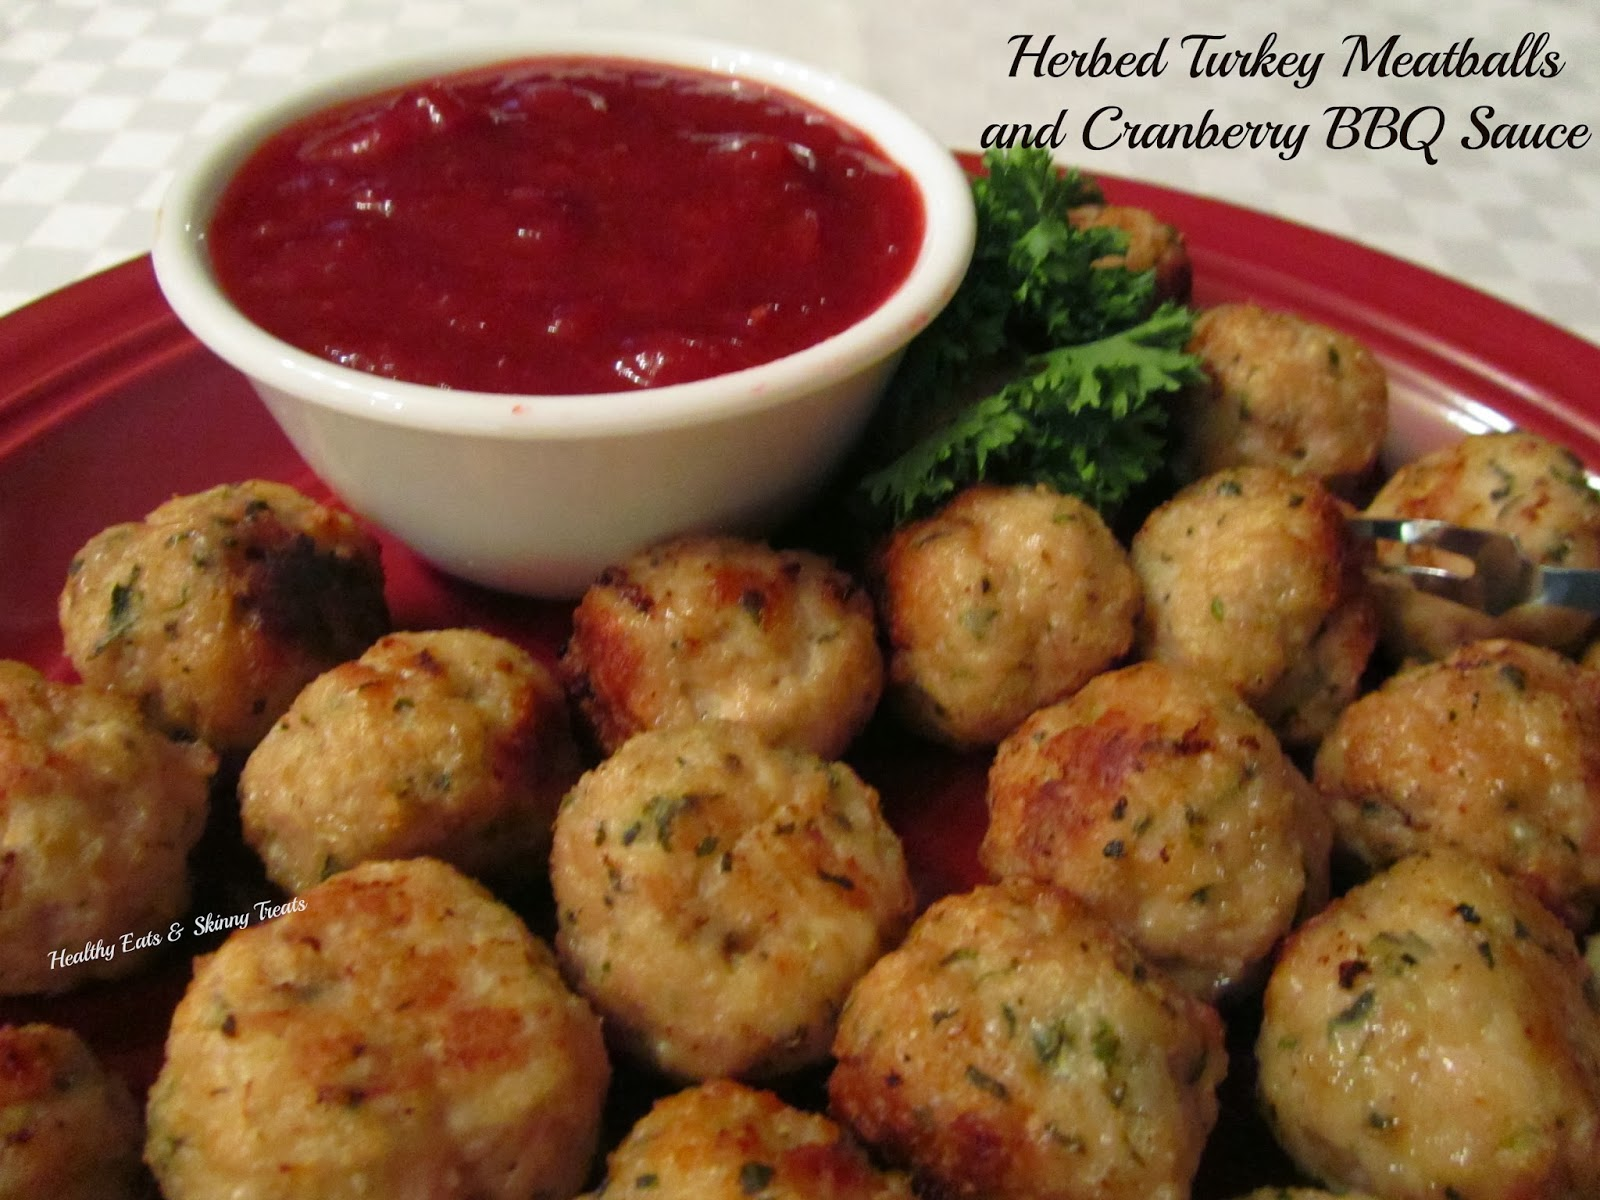 ... Eats & Skinny Treats: Herbed Turkey Meatballs and Cranberry BBQ Sauce